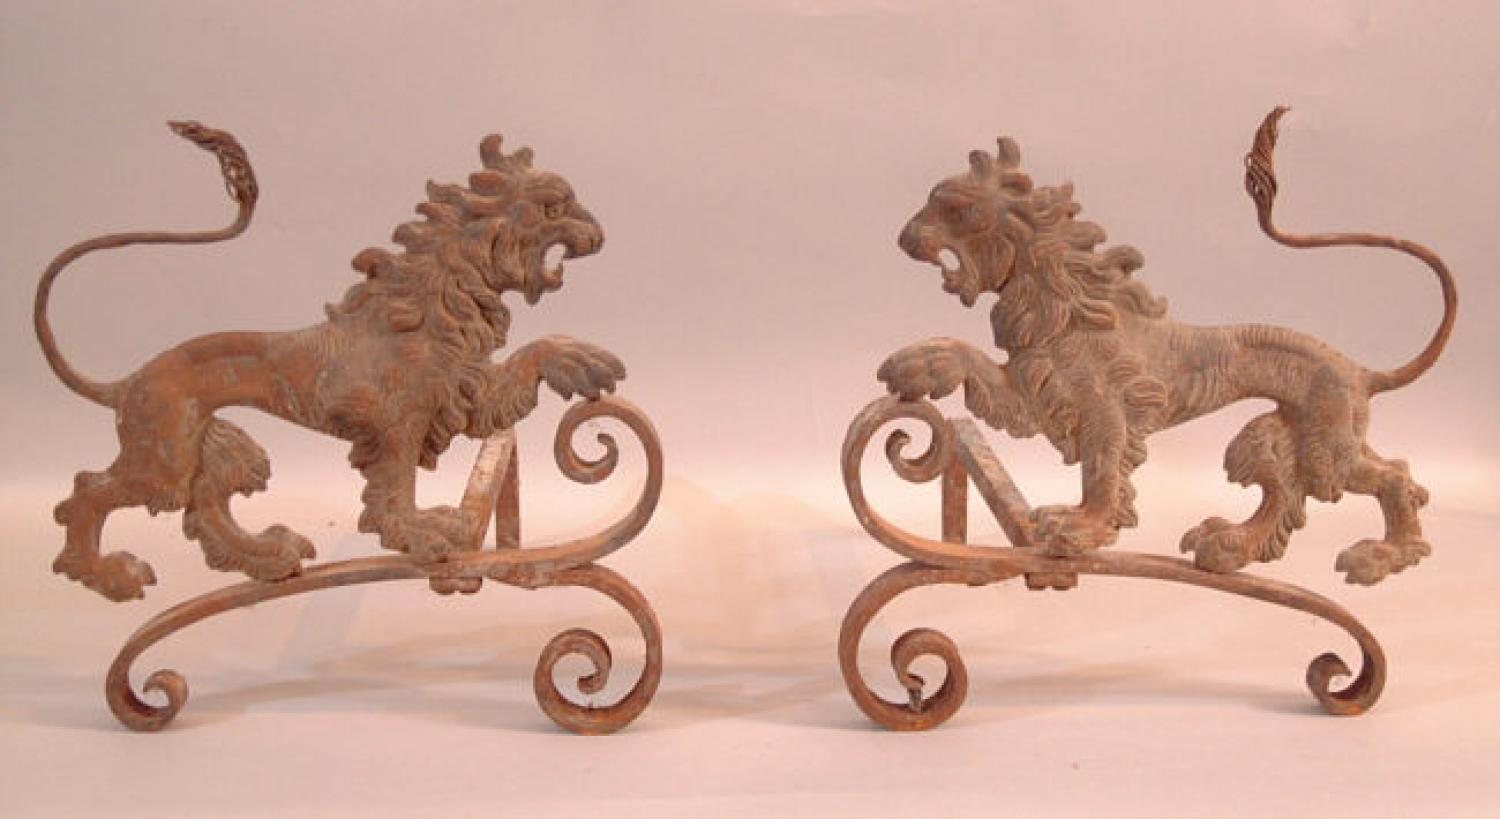 Antique pr Lion fireplace andirons c1900